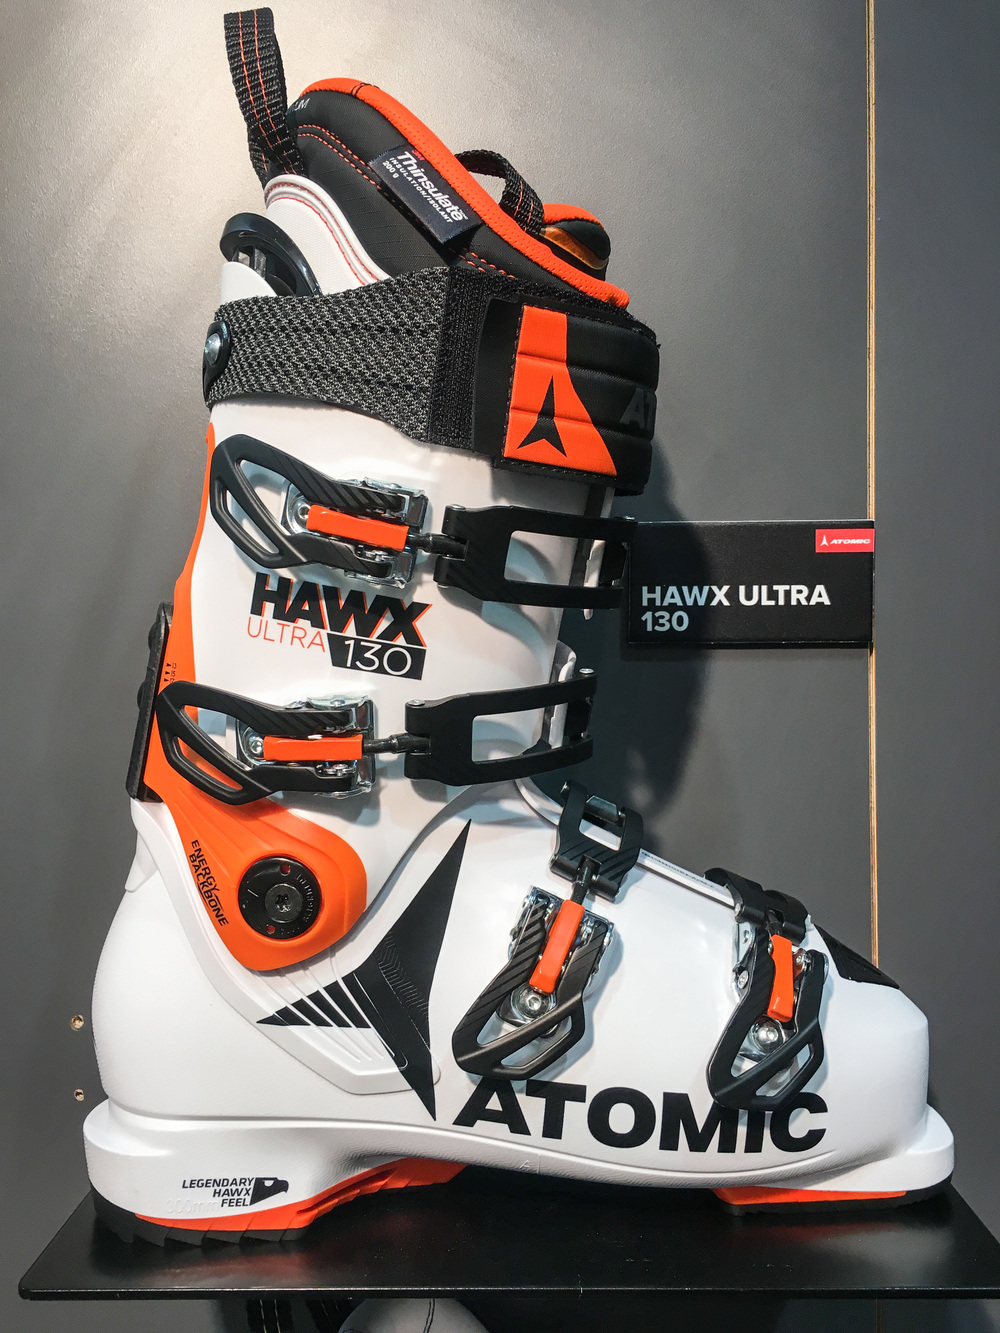 ATOMIC HAWX ULTRA 130 SKI BOOT, $850